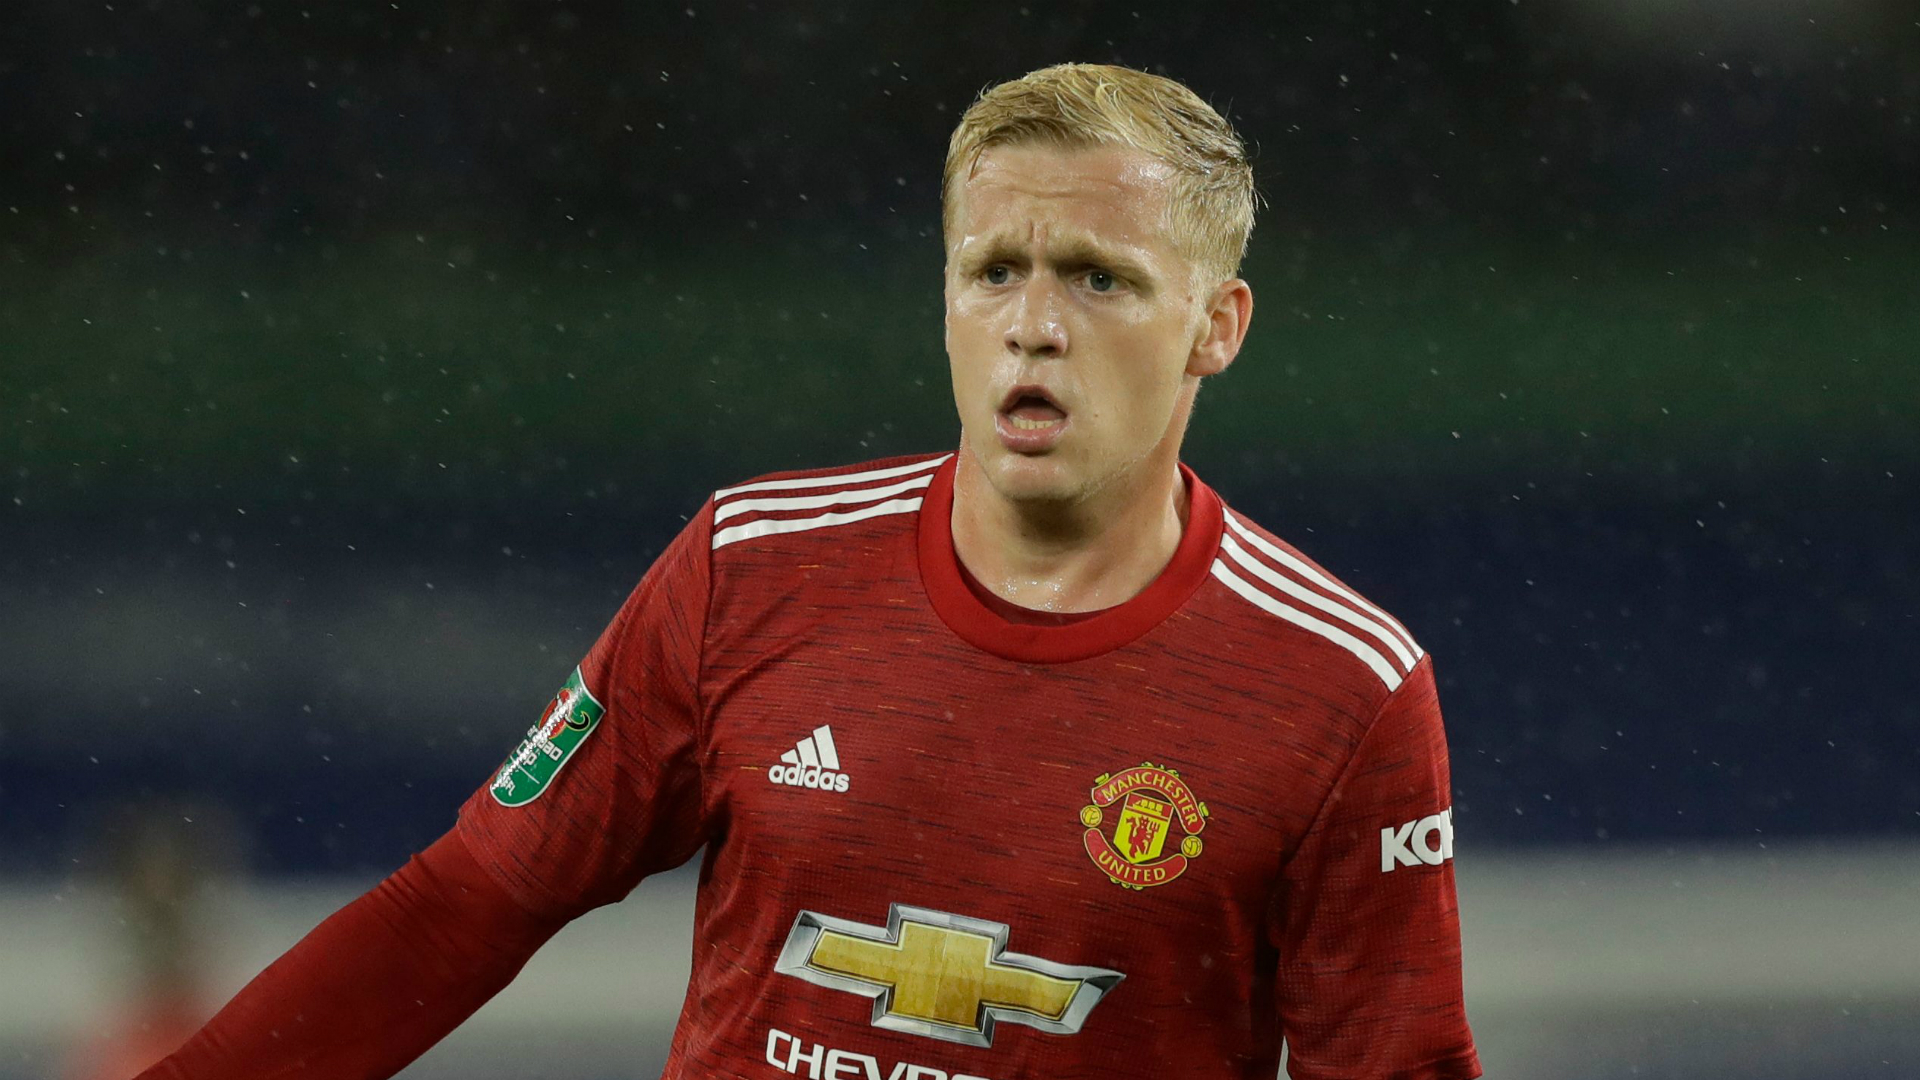 I love playing with him - Mata hails 'very clever' Van de Beek for assist in Man Utd win